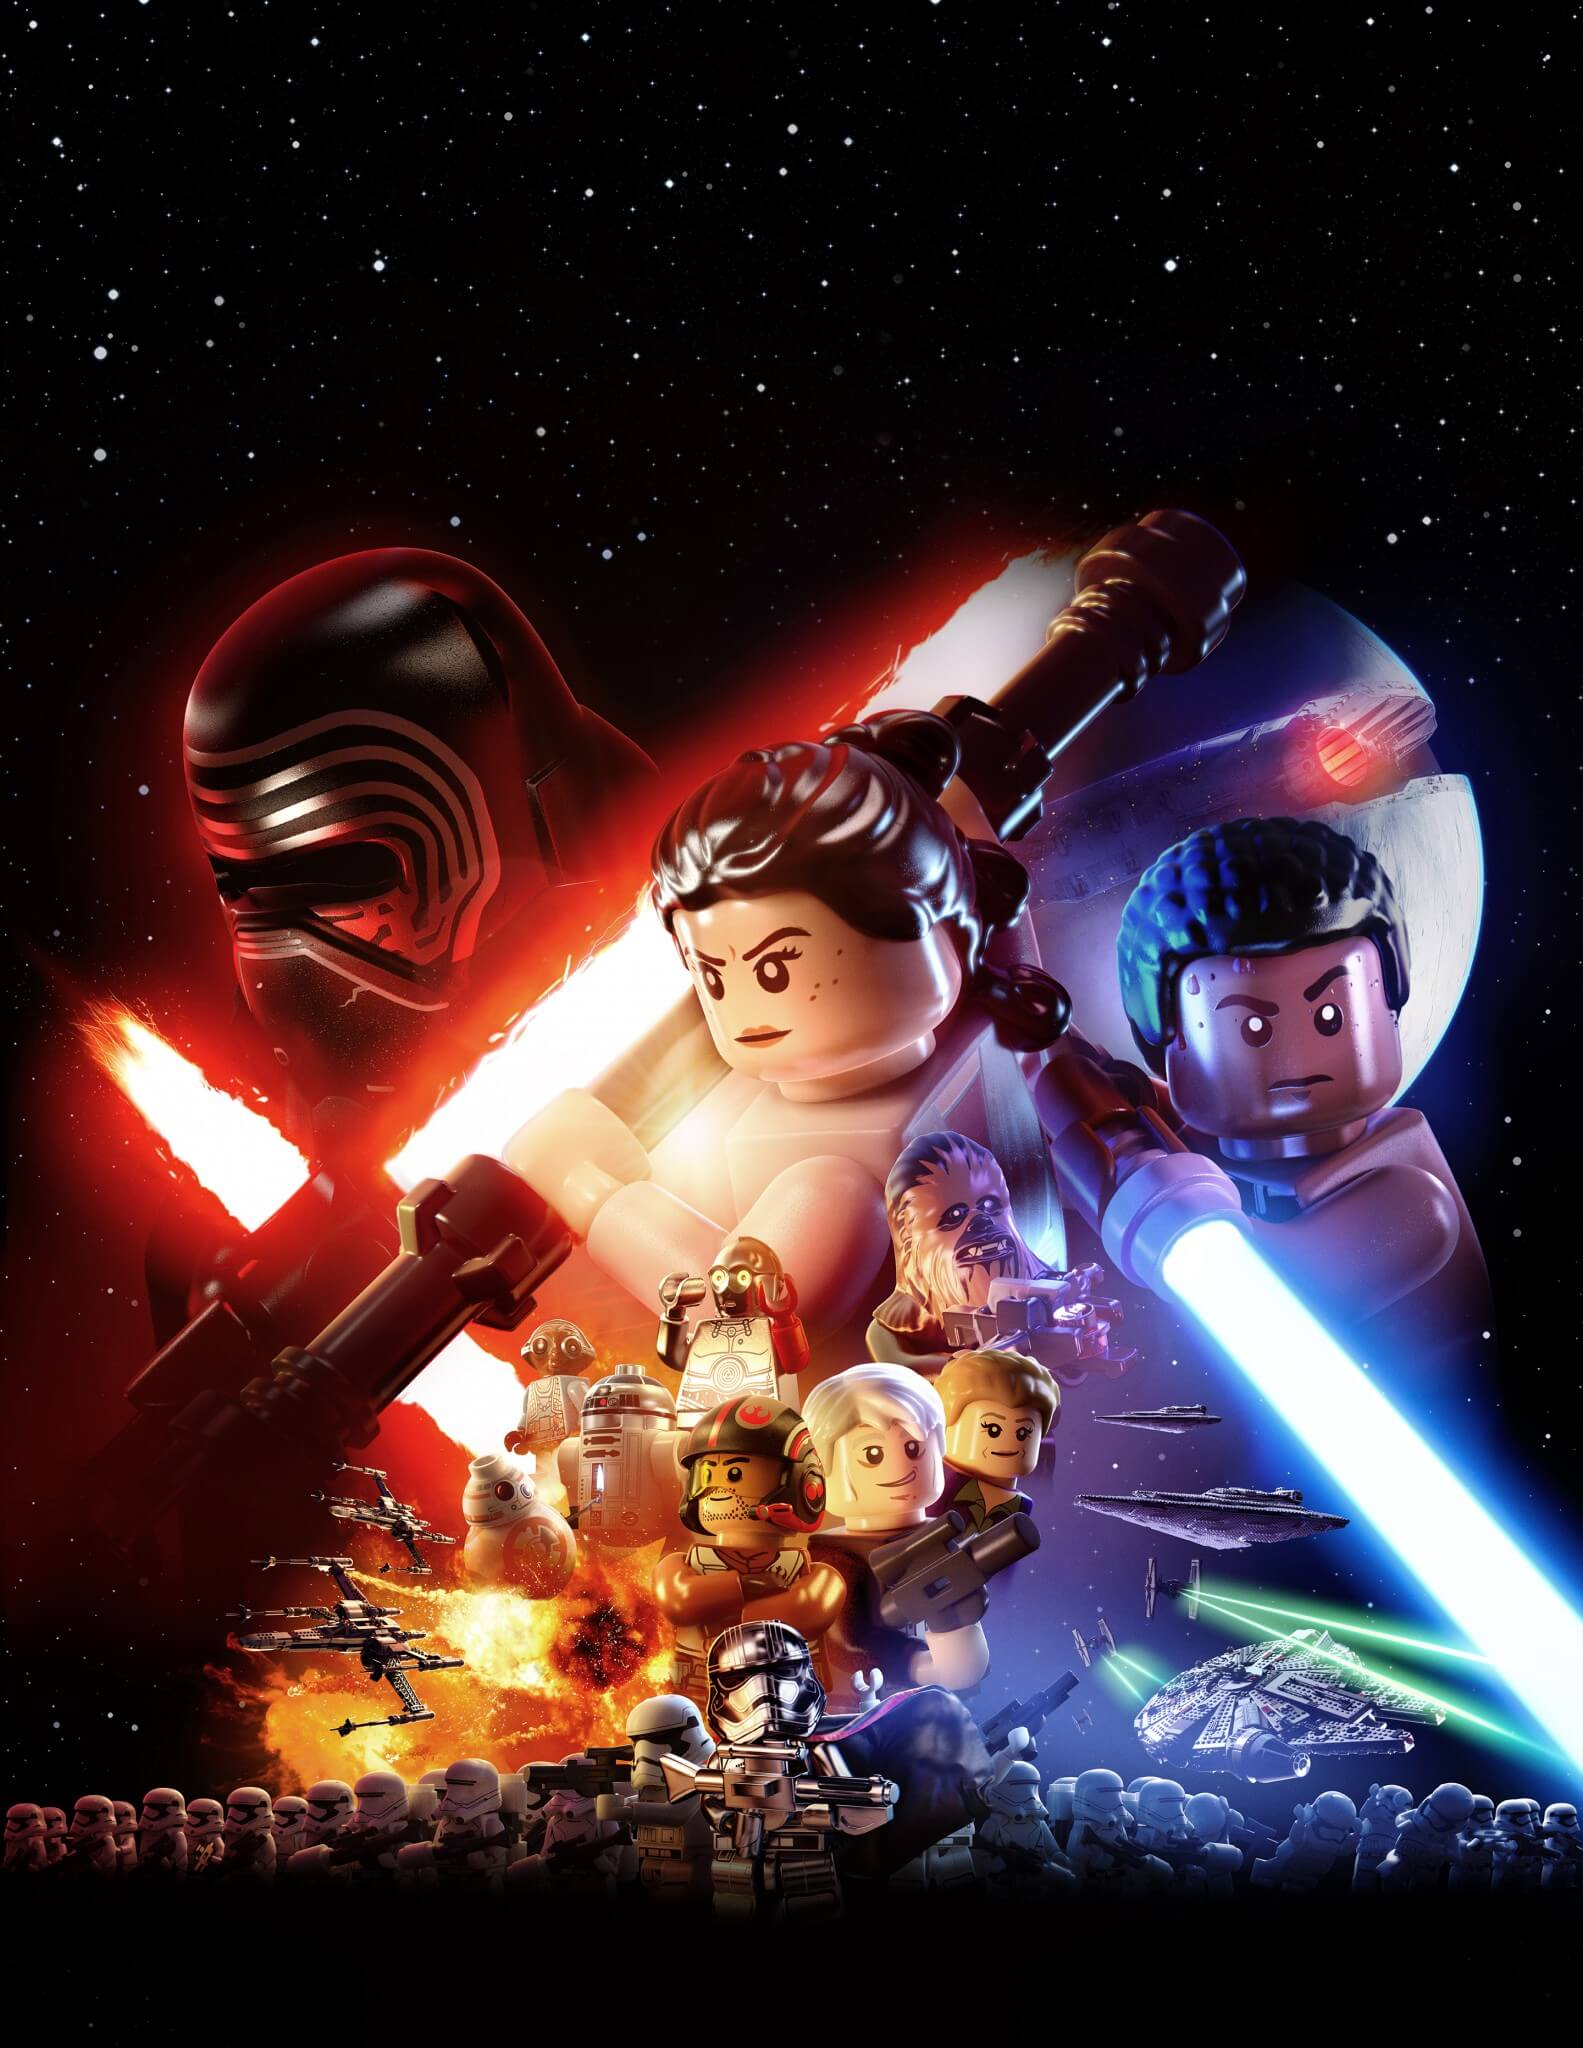 Lego Star Wars: The Force Awakens (Bildrechte: Feral interactive)